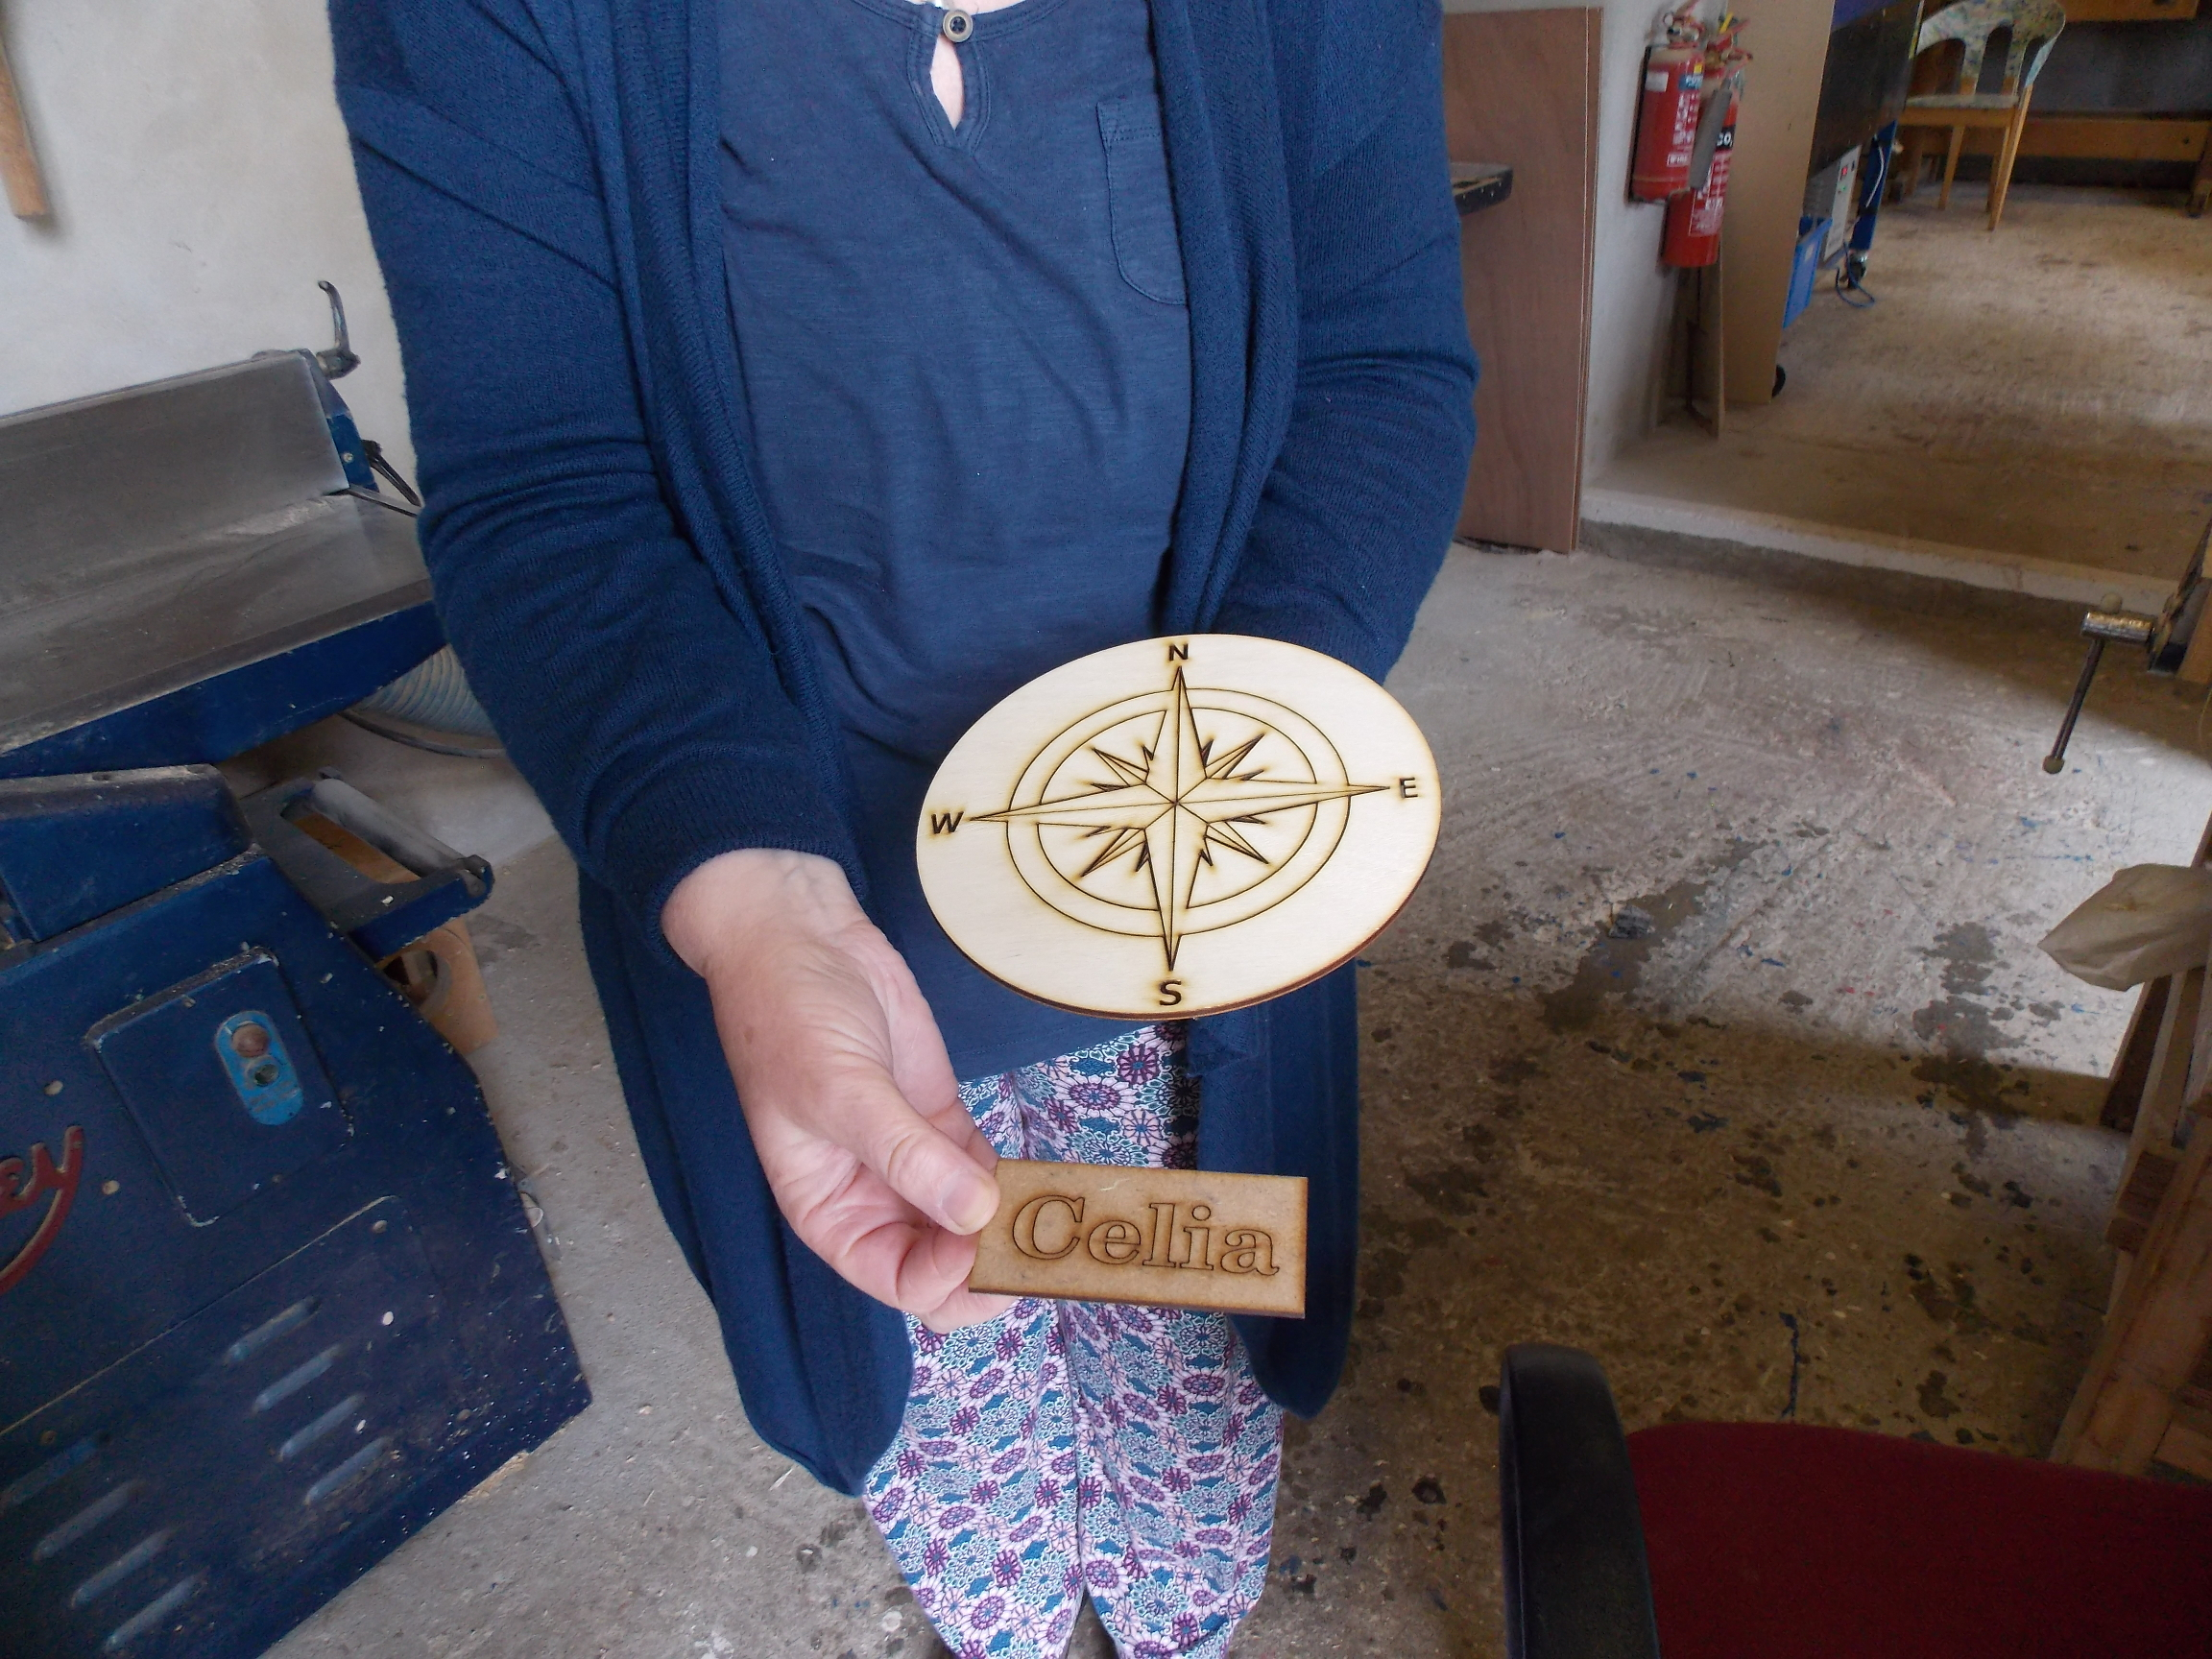 Compass rose and name made at Maker Space